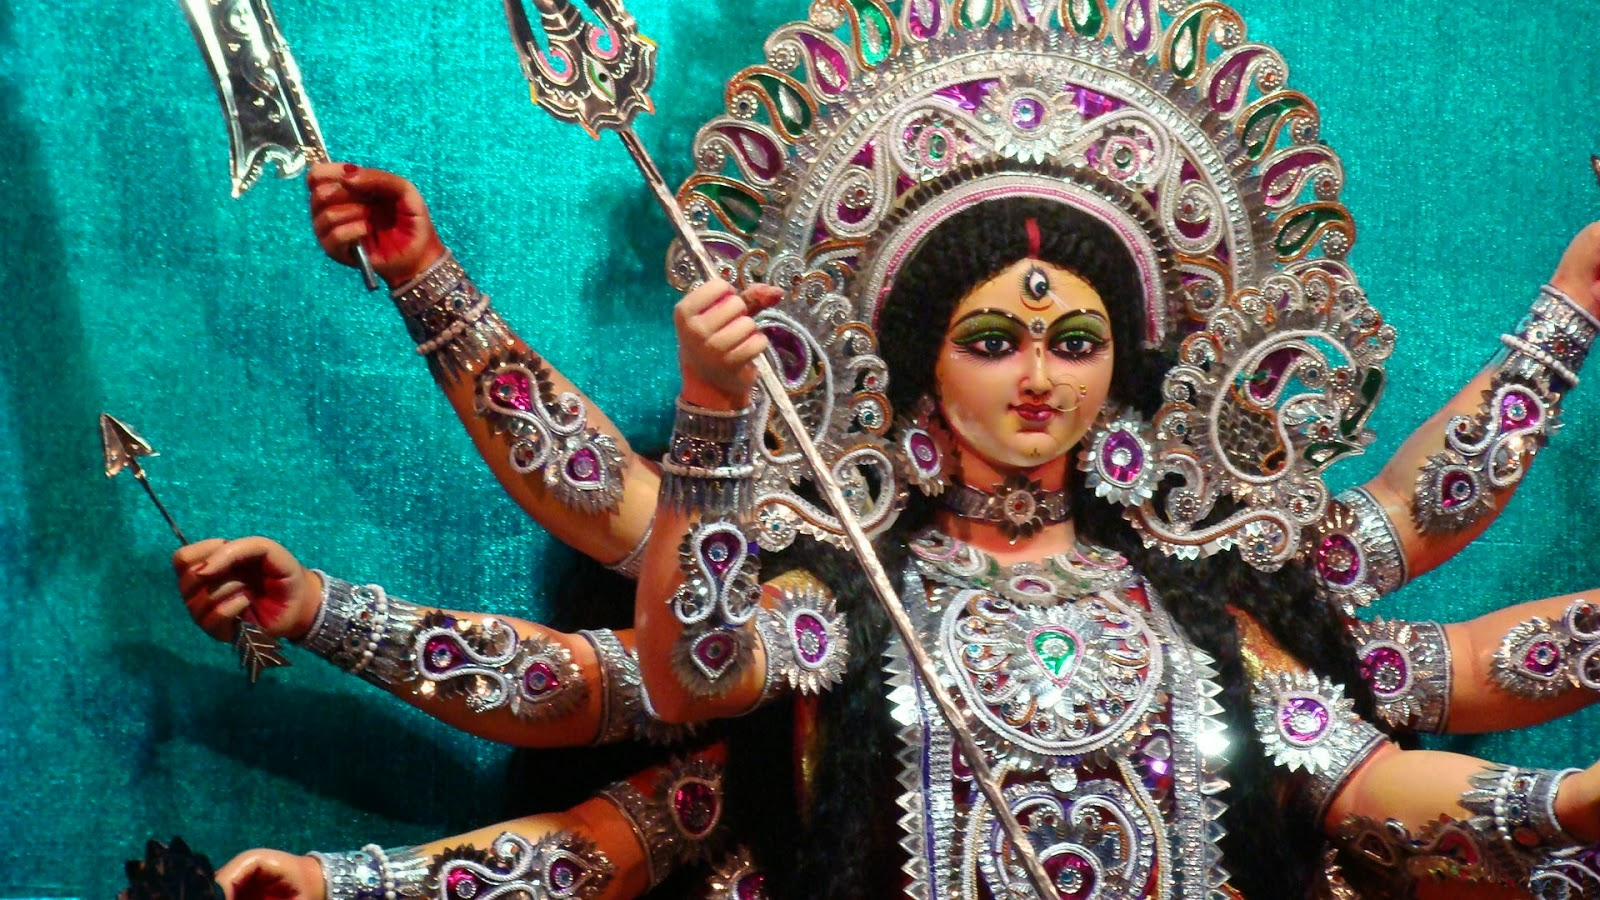 Goddess Maa Durga Devotional Wallpapers 99sharein 1600x900